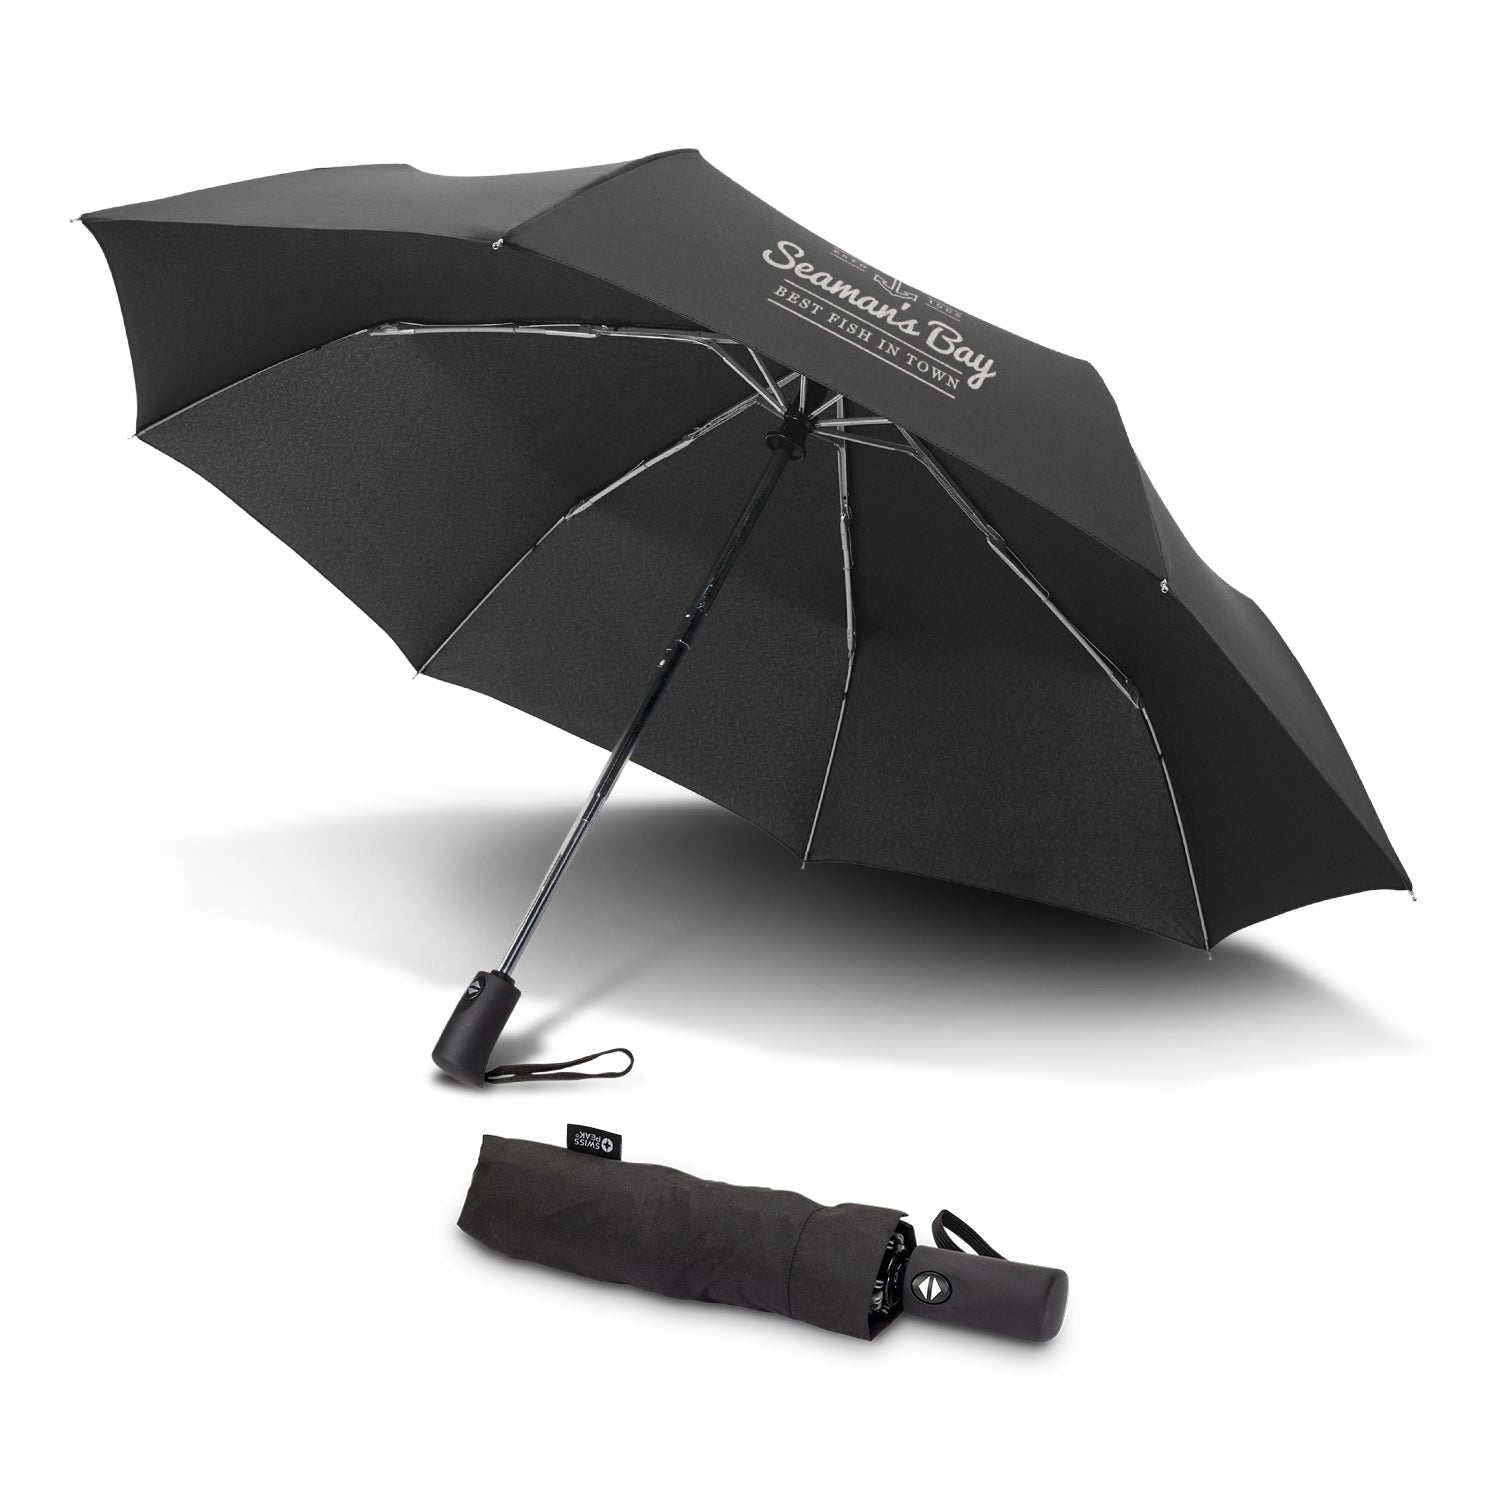 Premium Swiss Peak Foldable Umbrella(SUM-17T) - greenpac.com.au